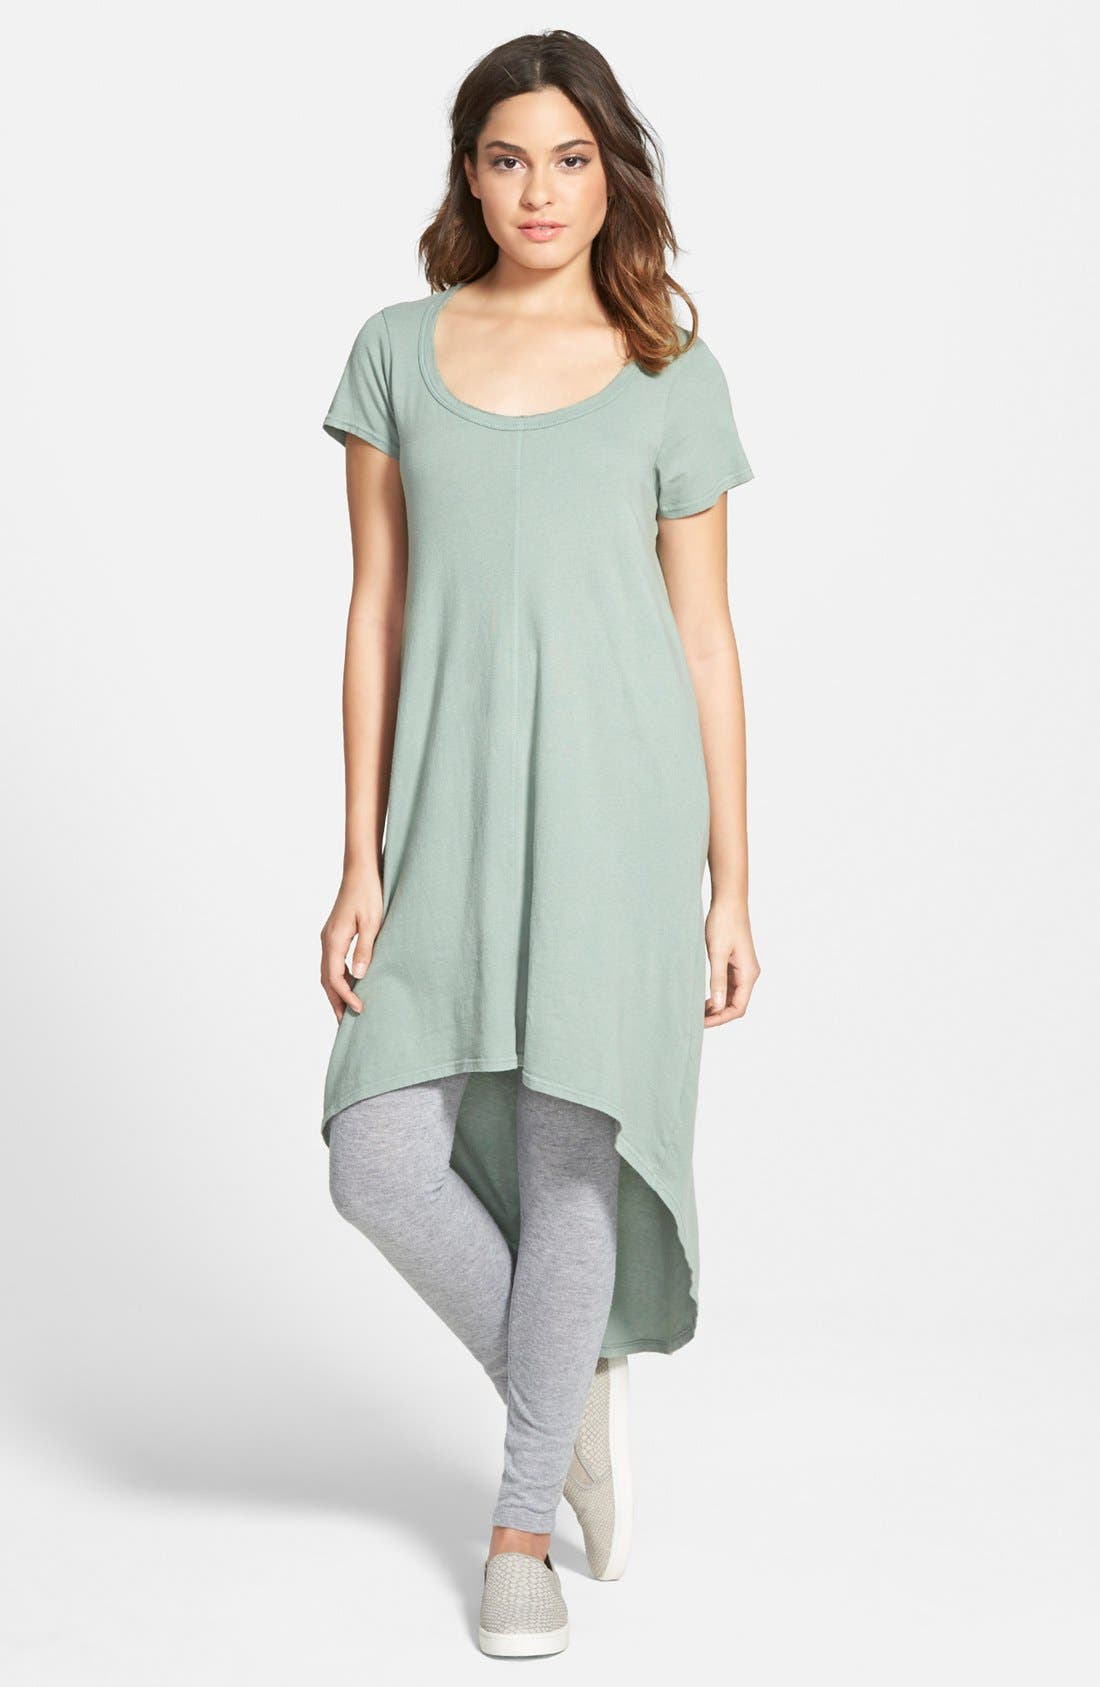 Main Image - Project Social T Oversize T-Shirt Tunic